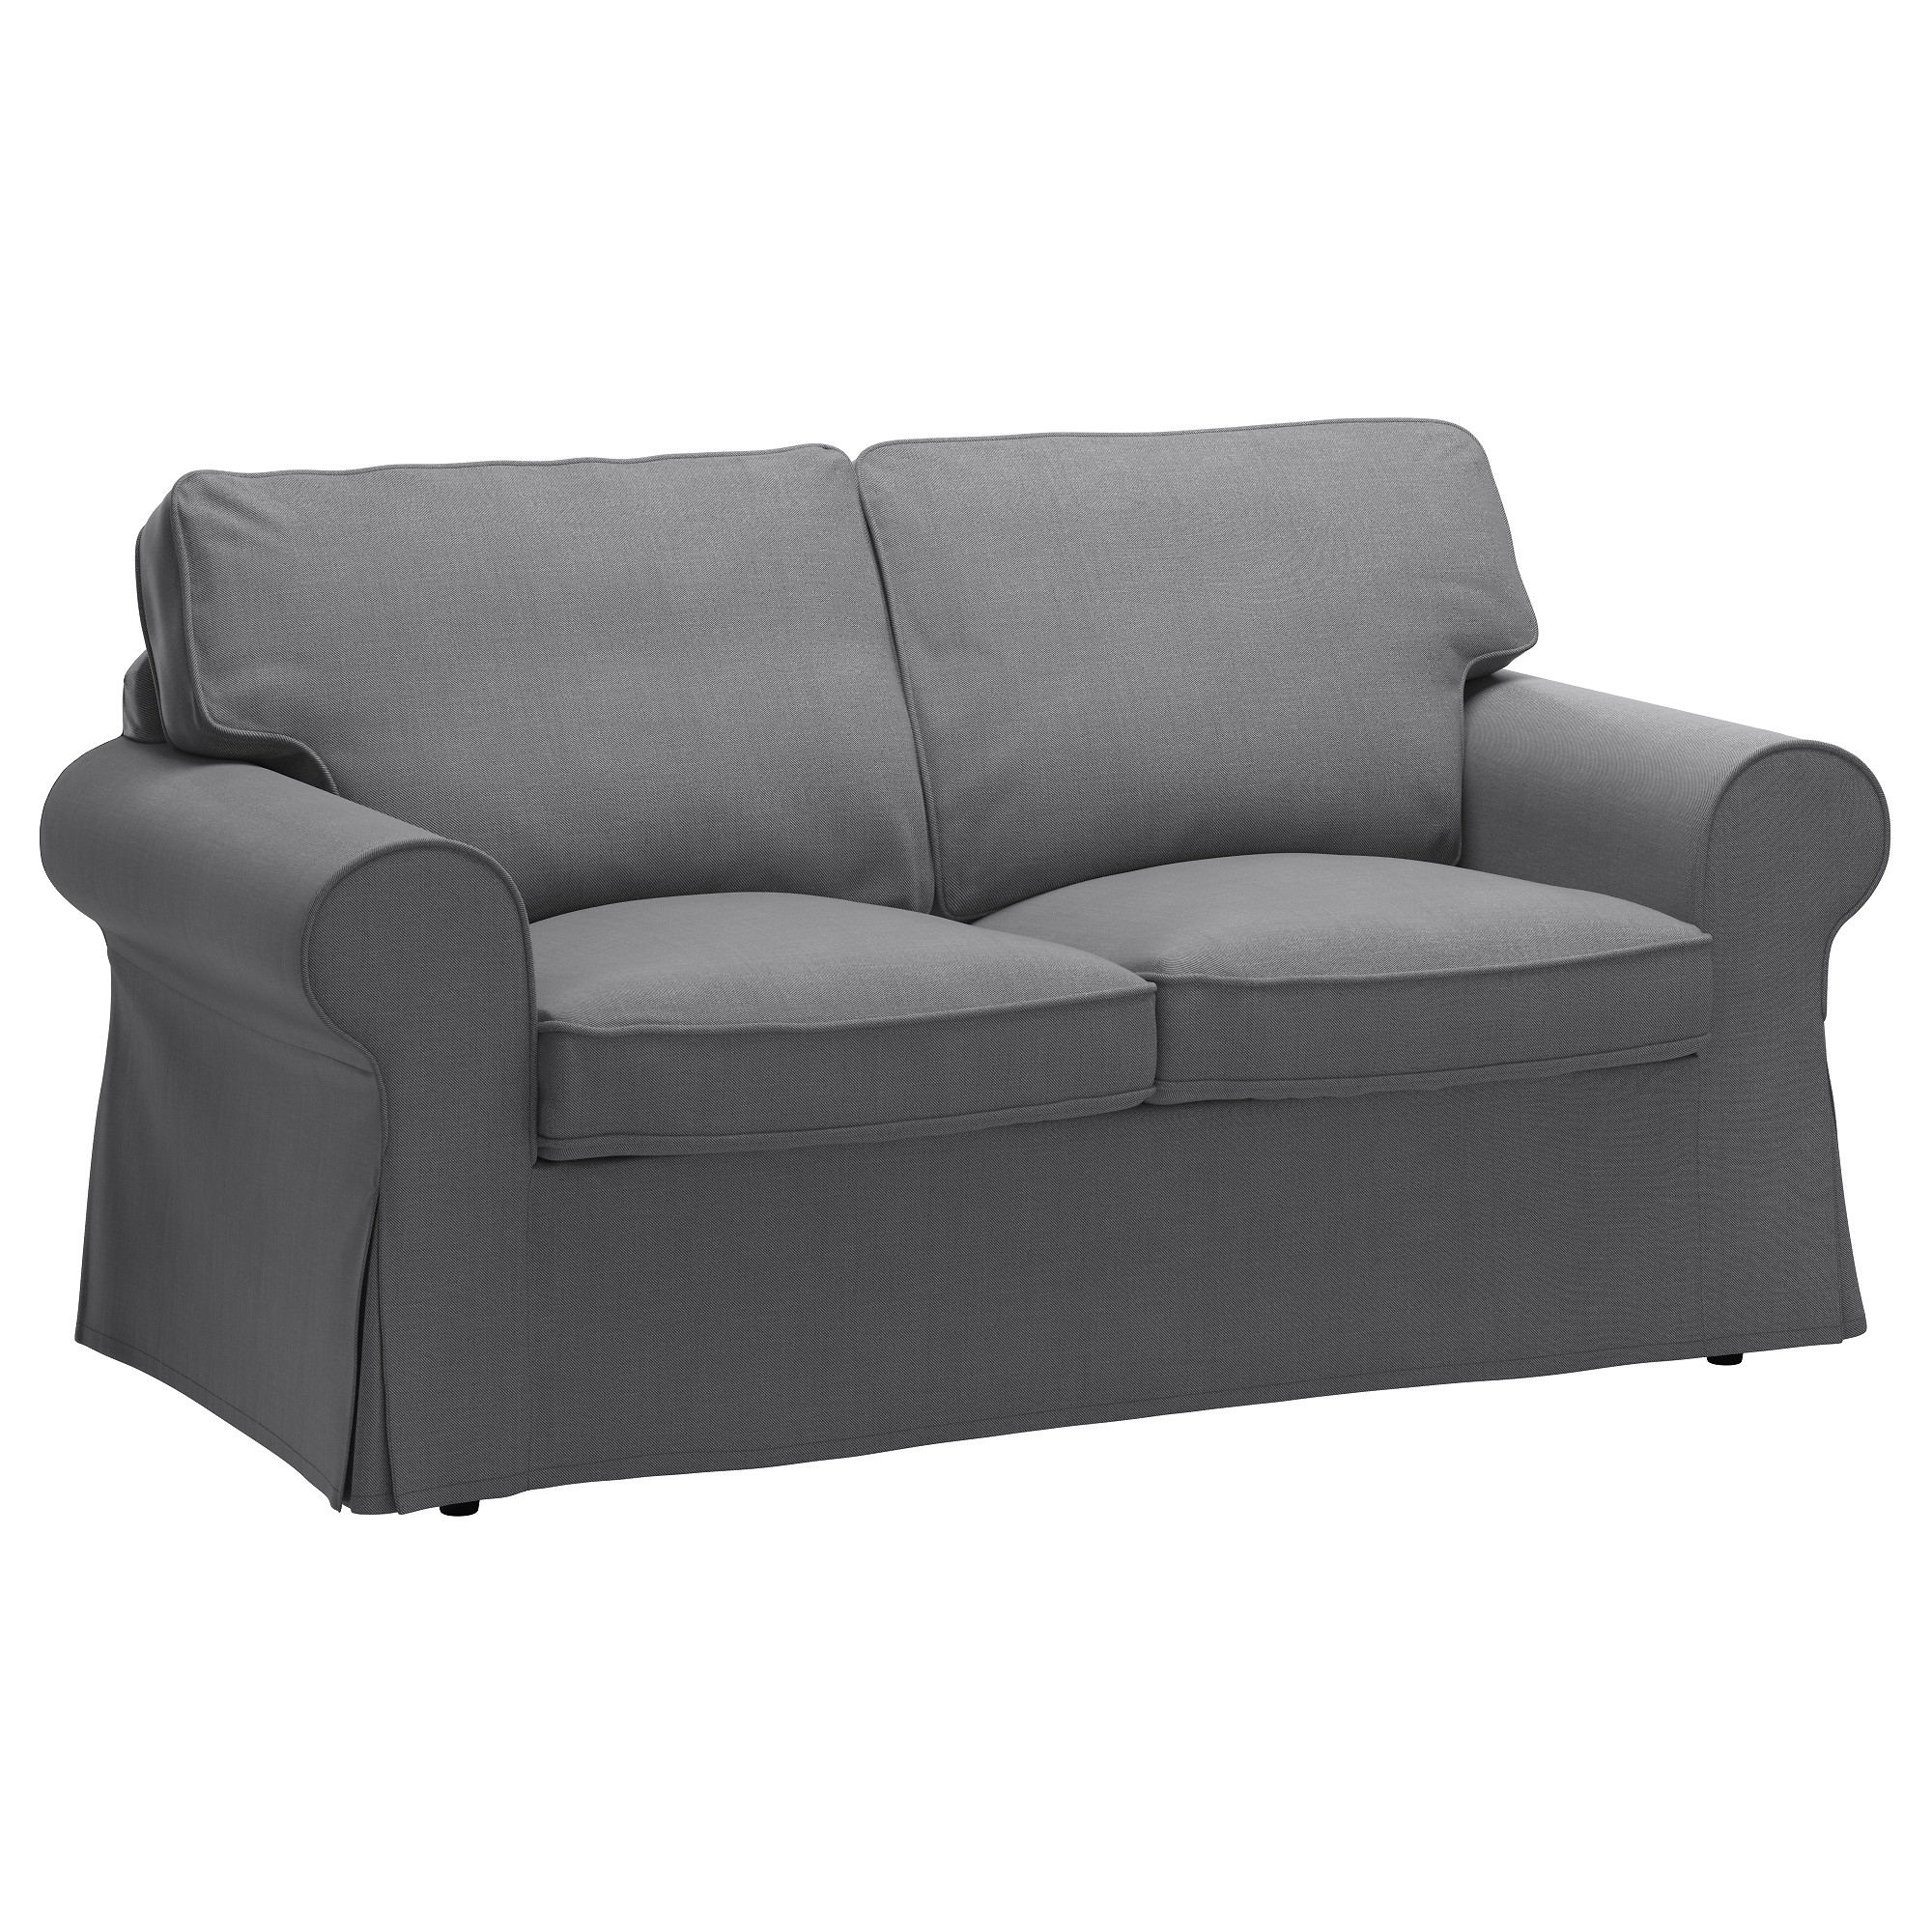 Furniture: Protecting Furniture From Kids With Sofa Arm Covers Pertaining To Best And Newest Chaise Lounge Chairs With Arms Slipcover (View 11 of 15)